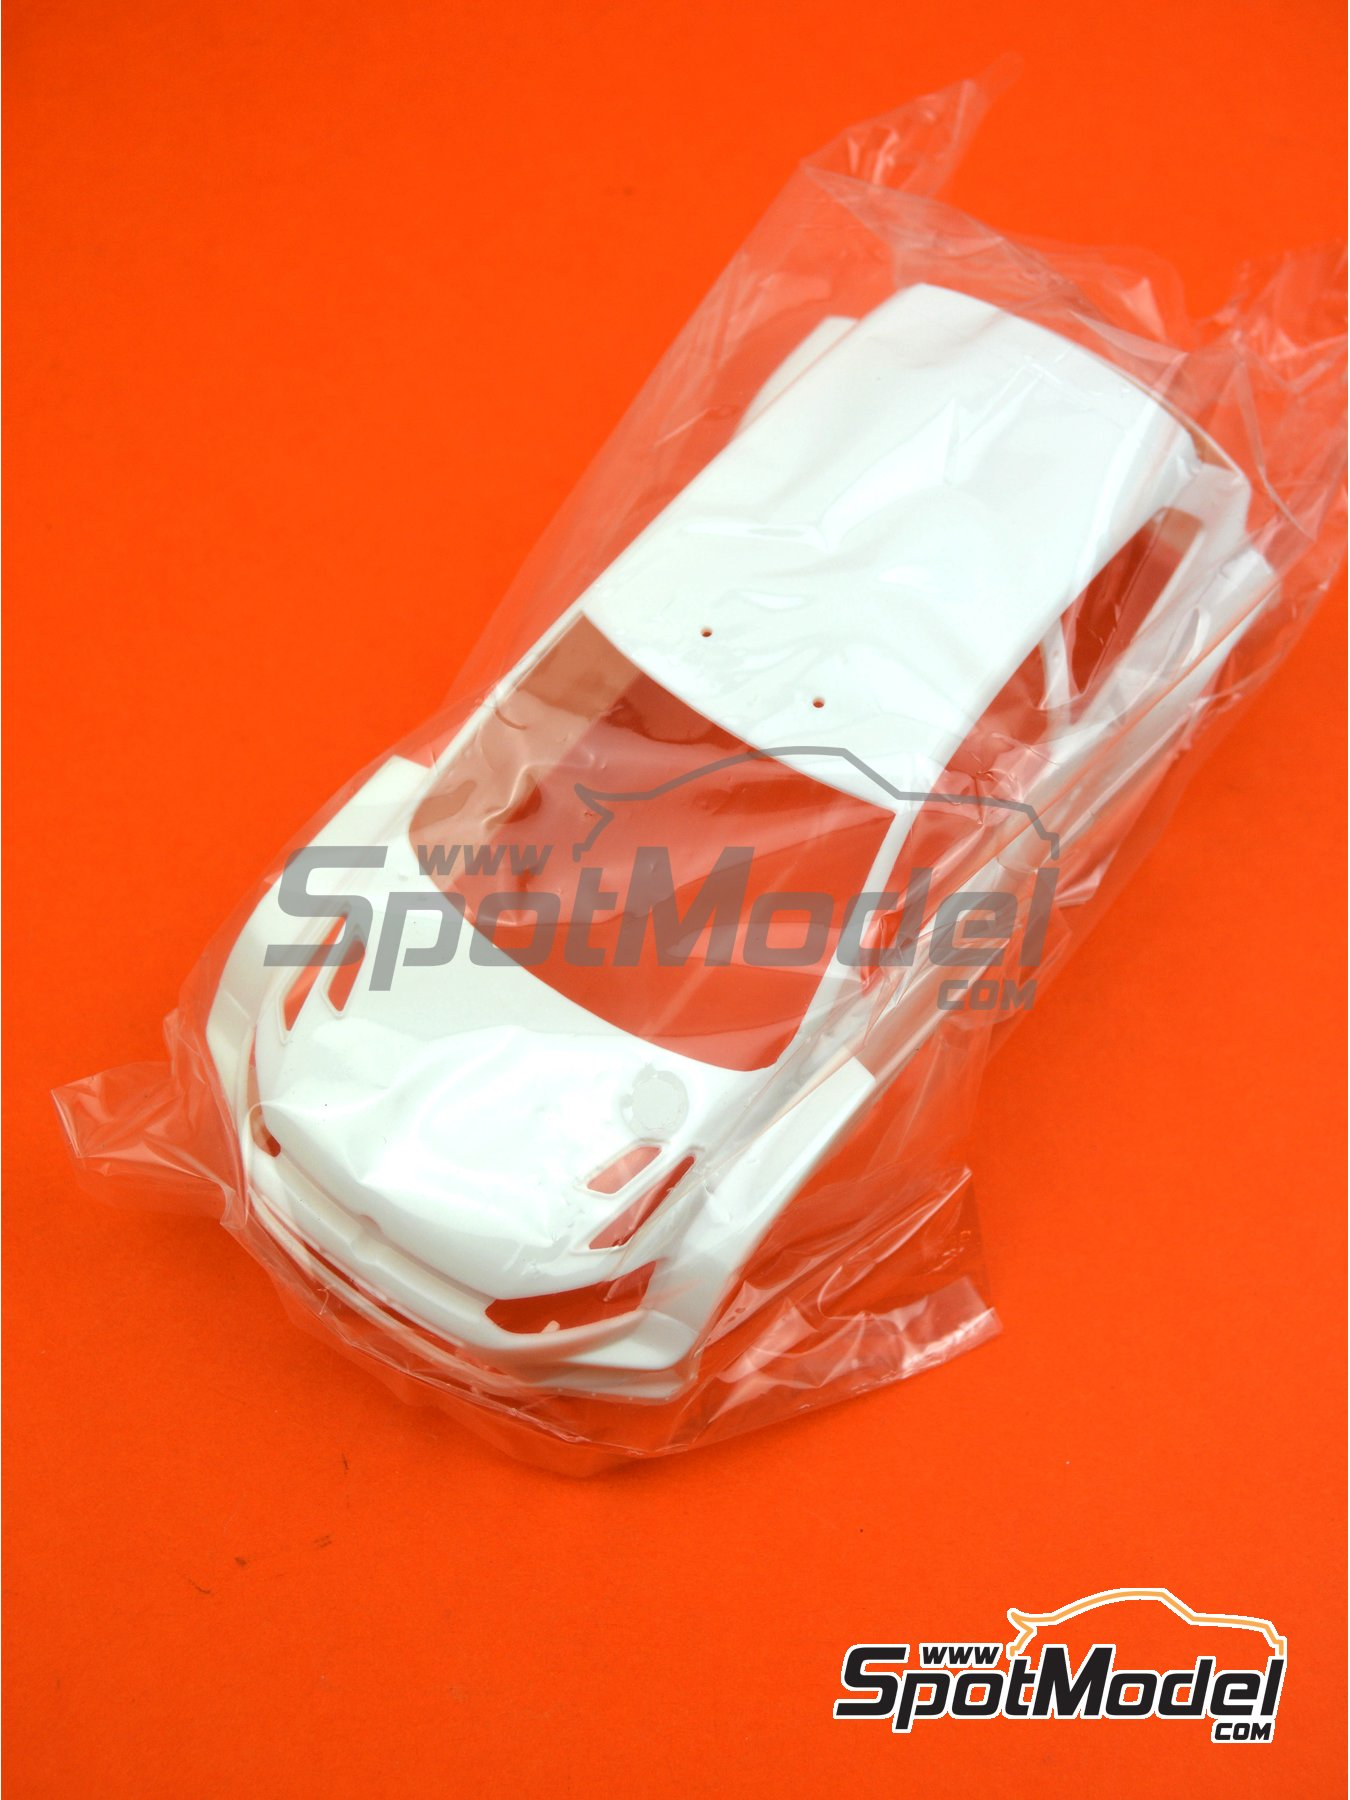 Volkswagen Polo R WRC: Body | Spare part in 1/24 scale manufactured by Belkits (ref. BEL010-BODY) image